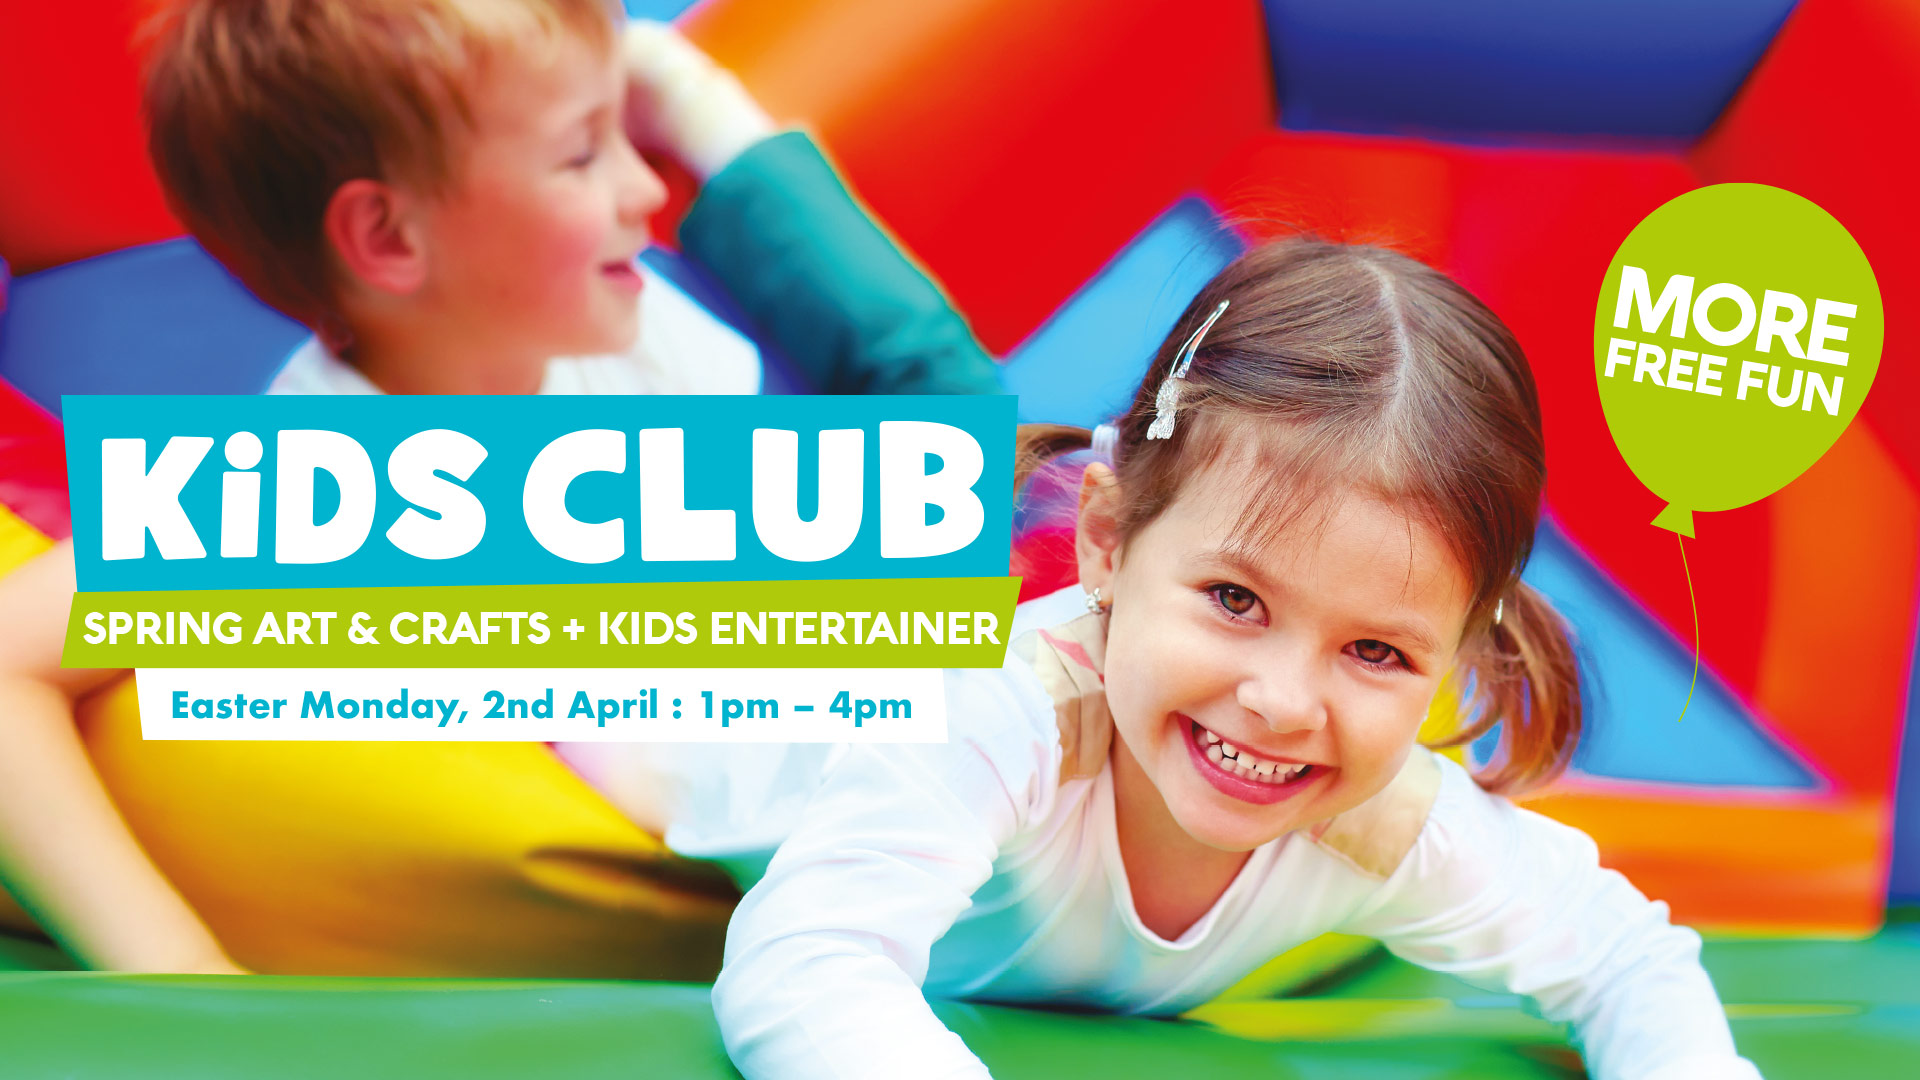 11185 CWest Kids Club Facebook Event Cover 1920x1080 26.03.18